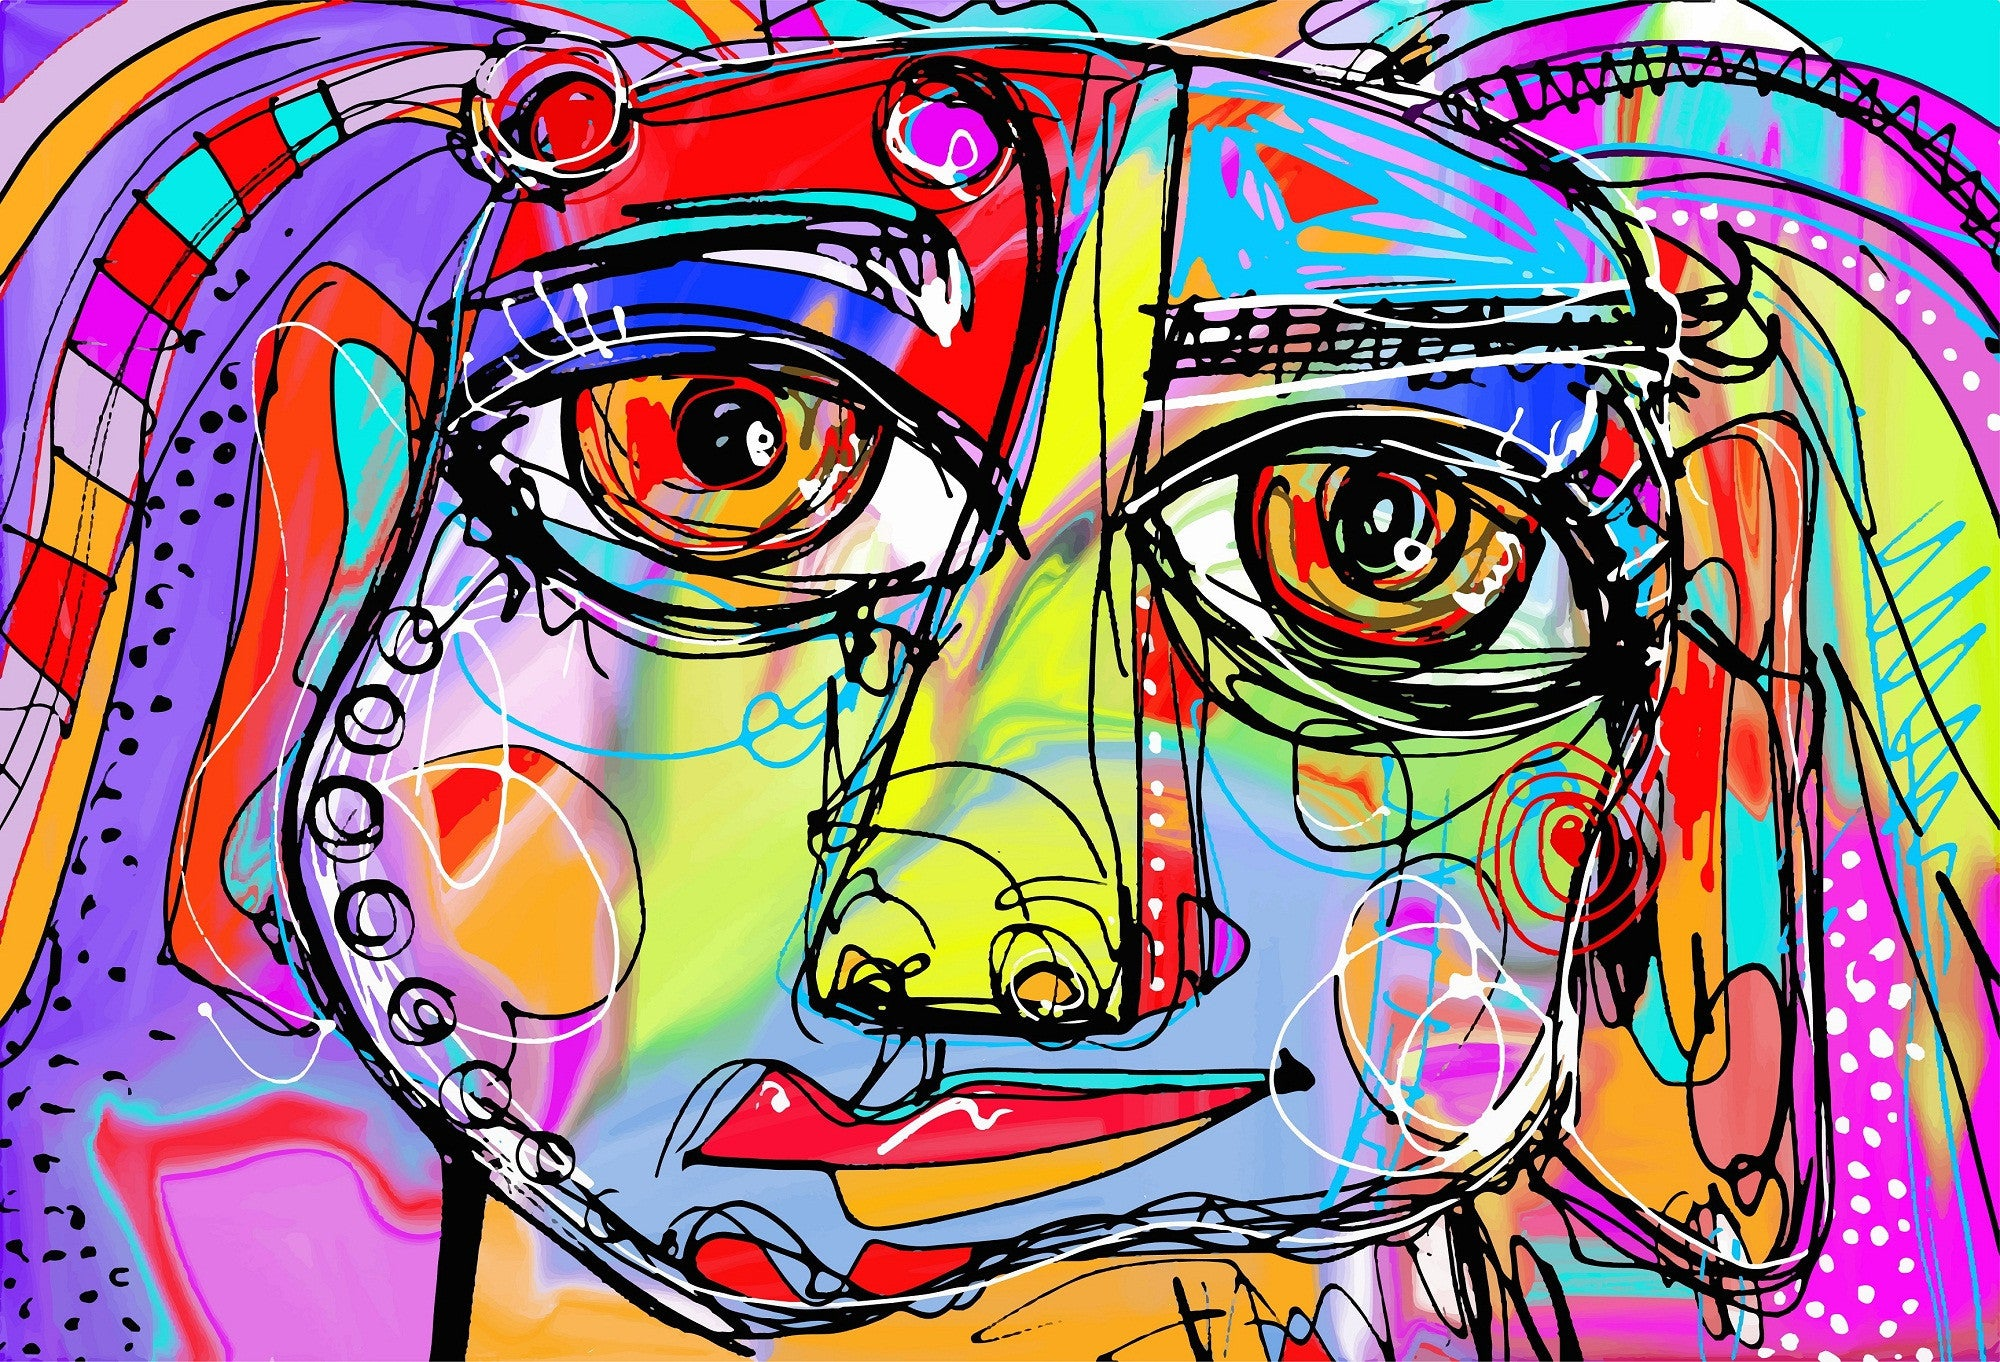 Abstract face of a girl posters